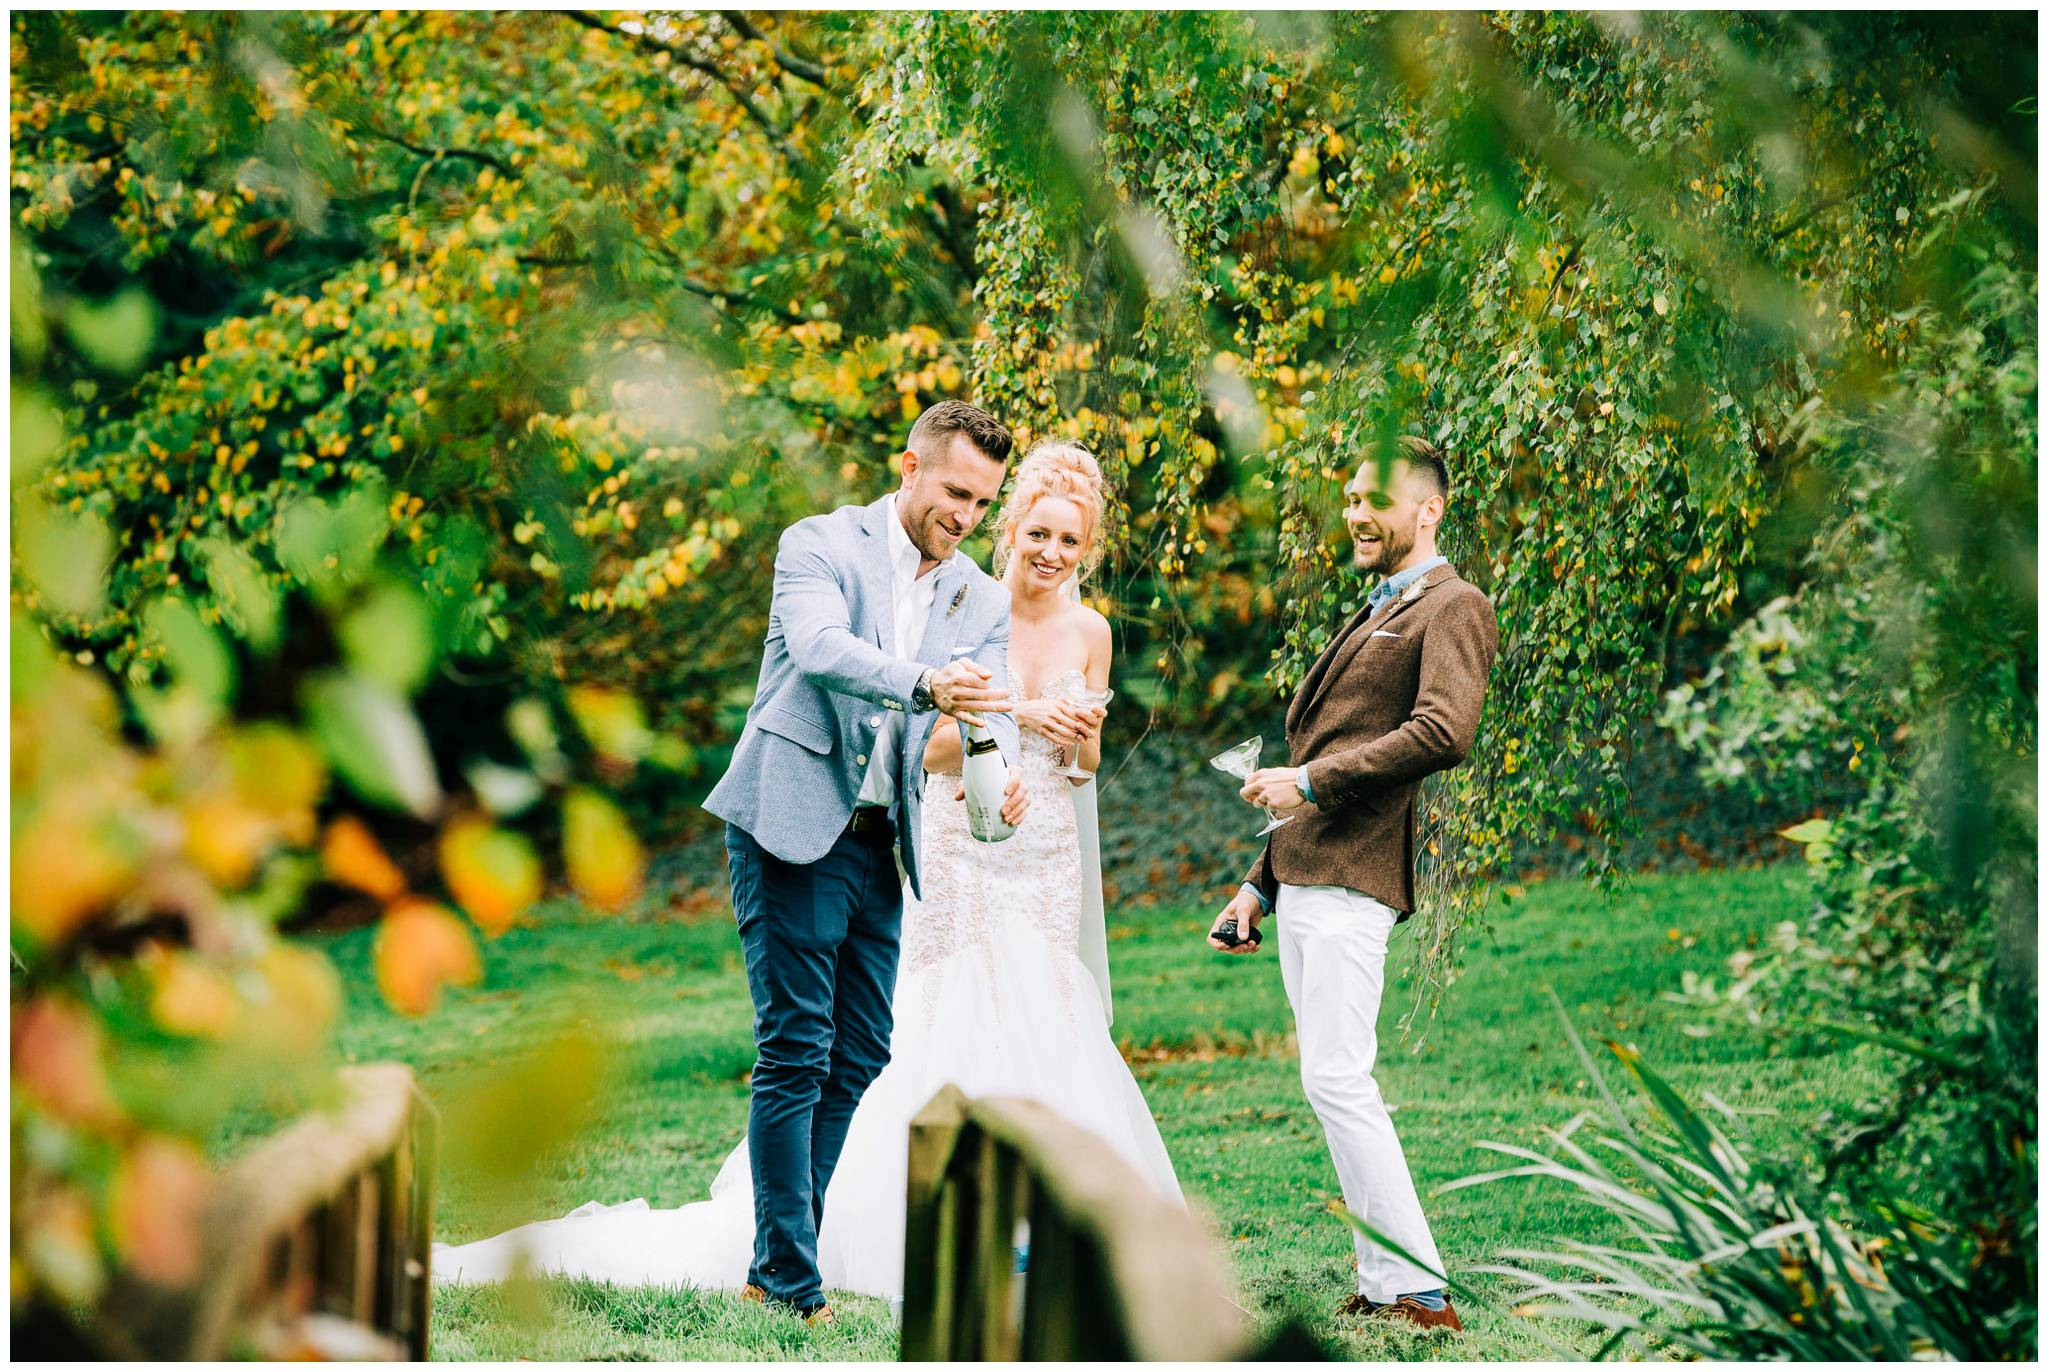 Natural wedding photography Manchester - Clare Robinson Photography_0286.jpg